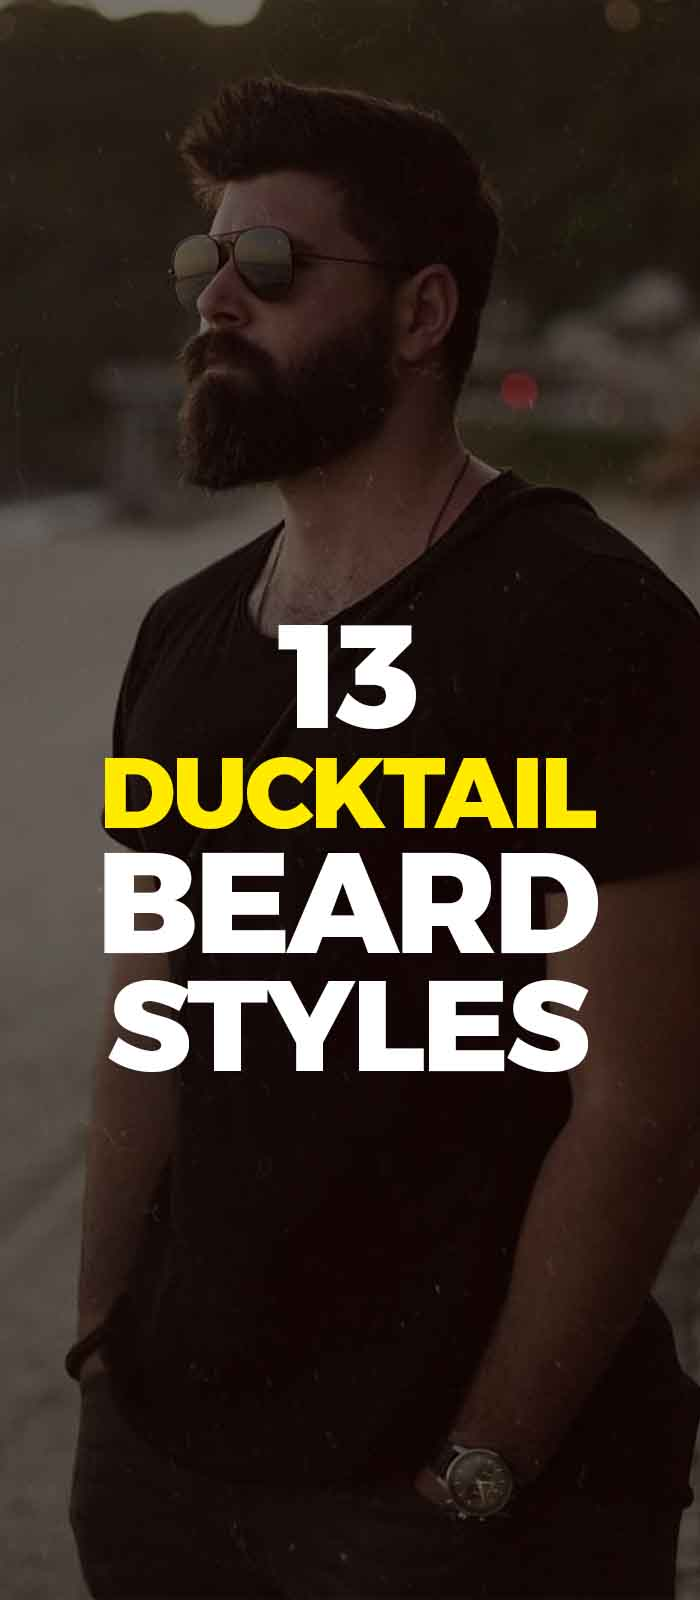 Black shirt,pant and glasses with Ducktail beard look!